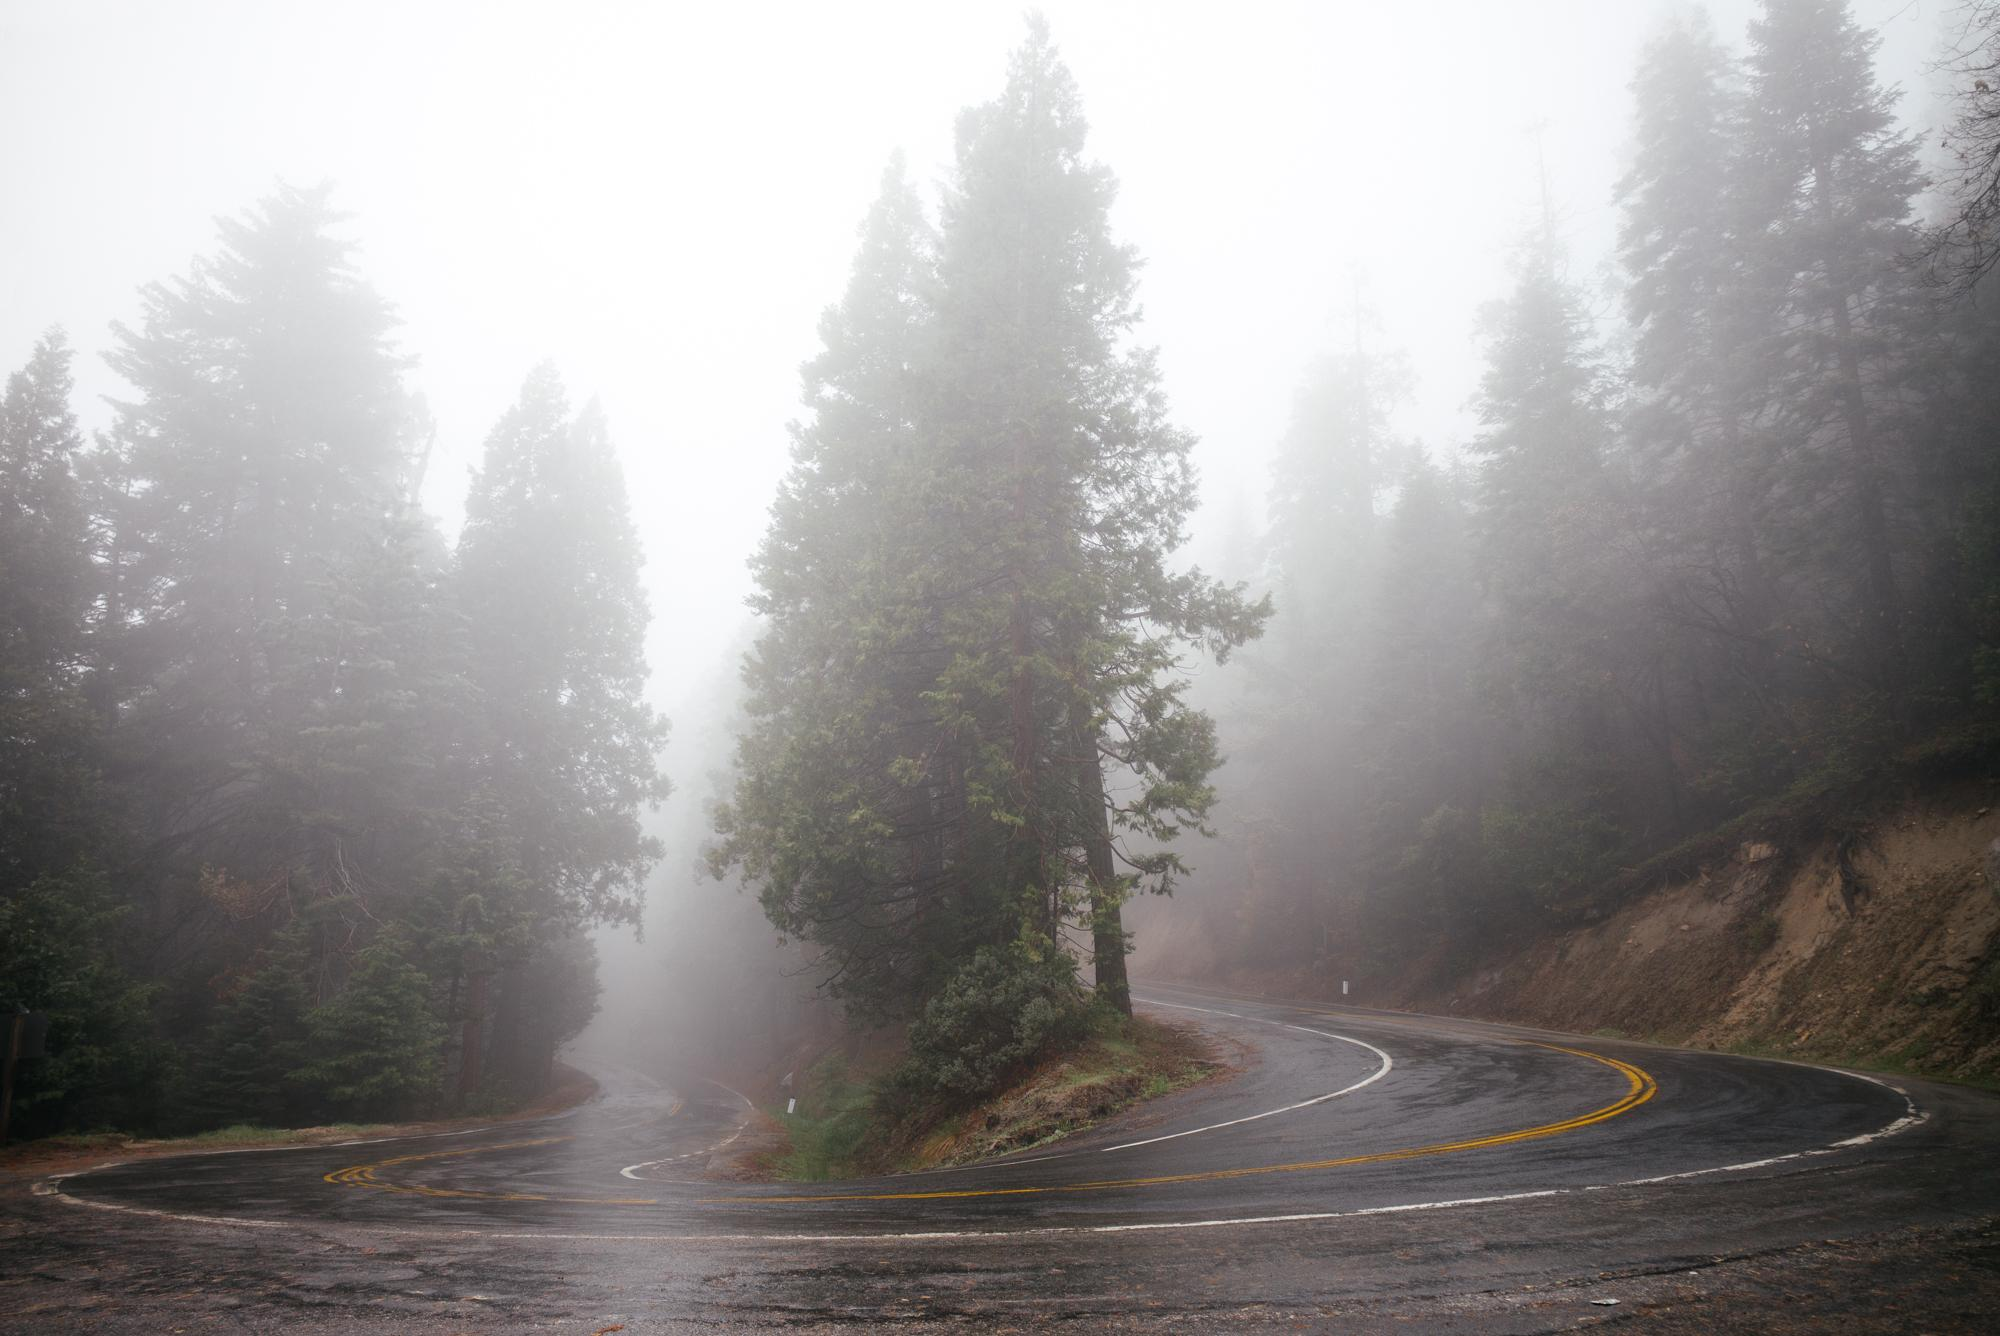 Sequoias, hugged by the road.